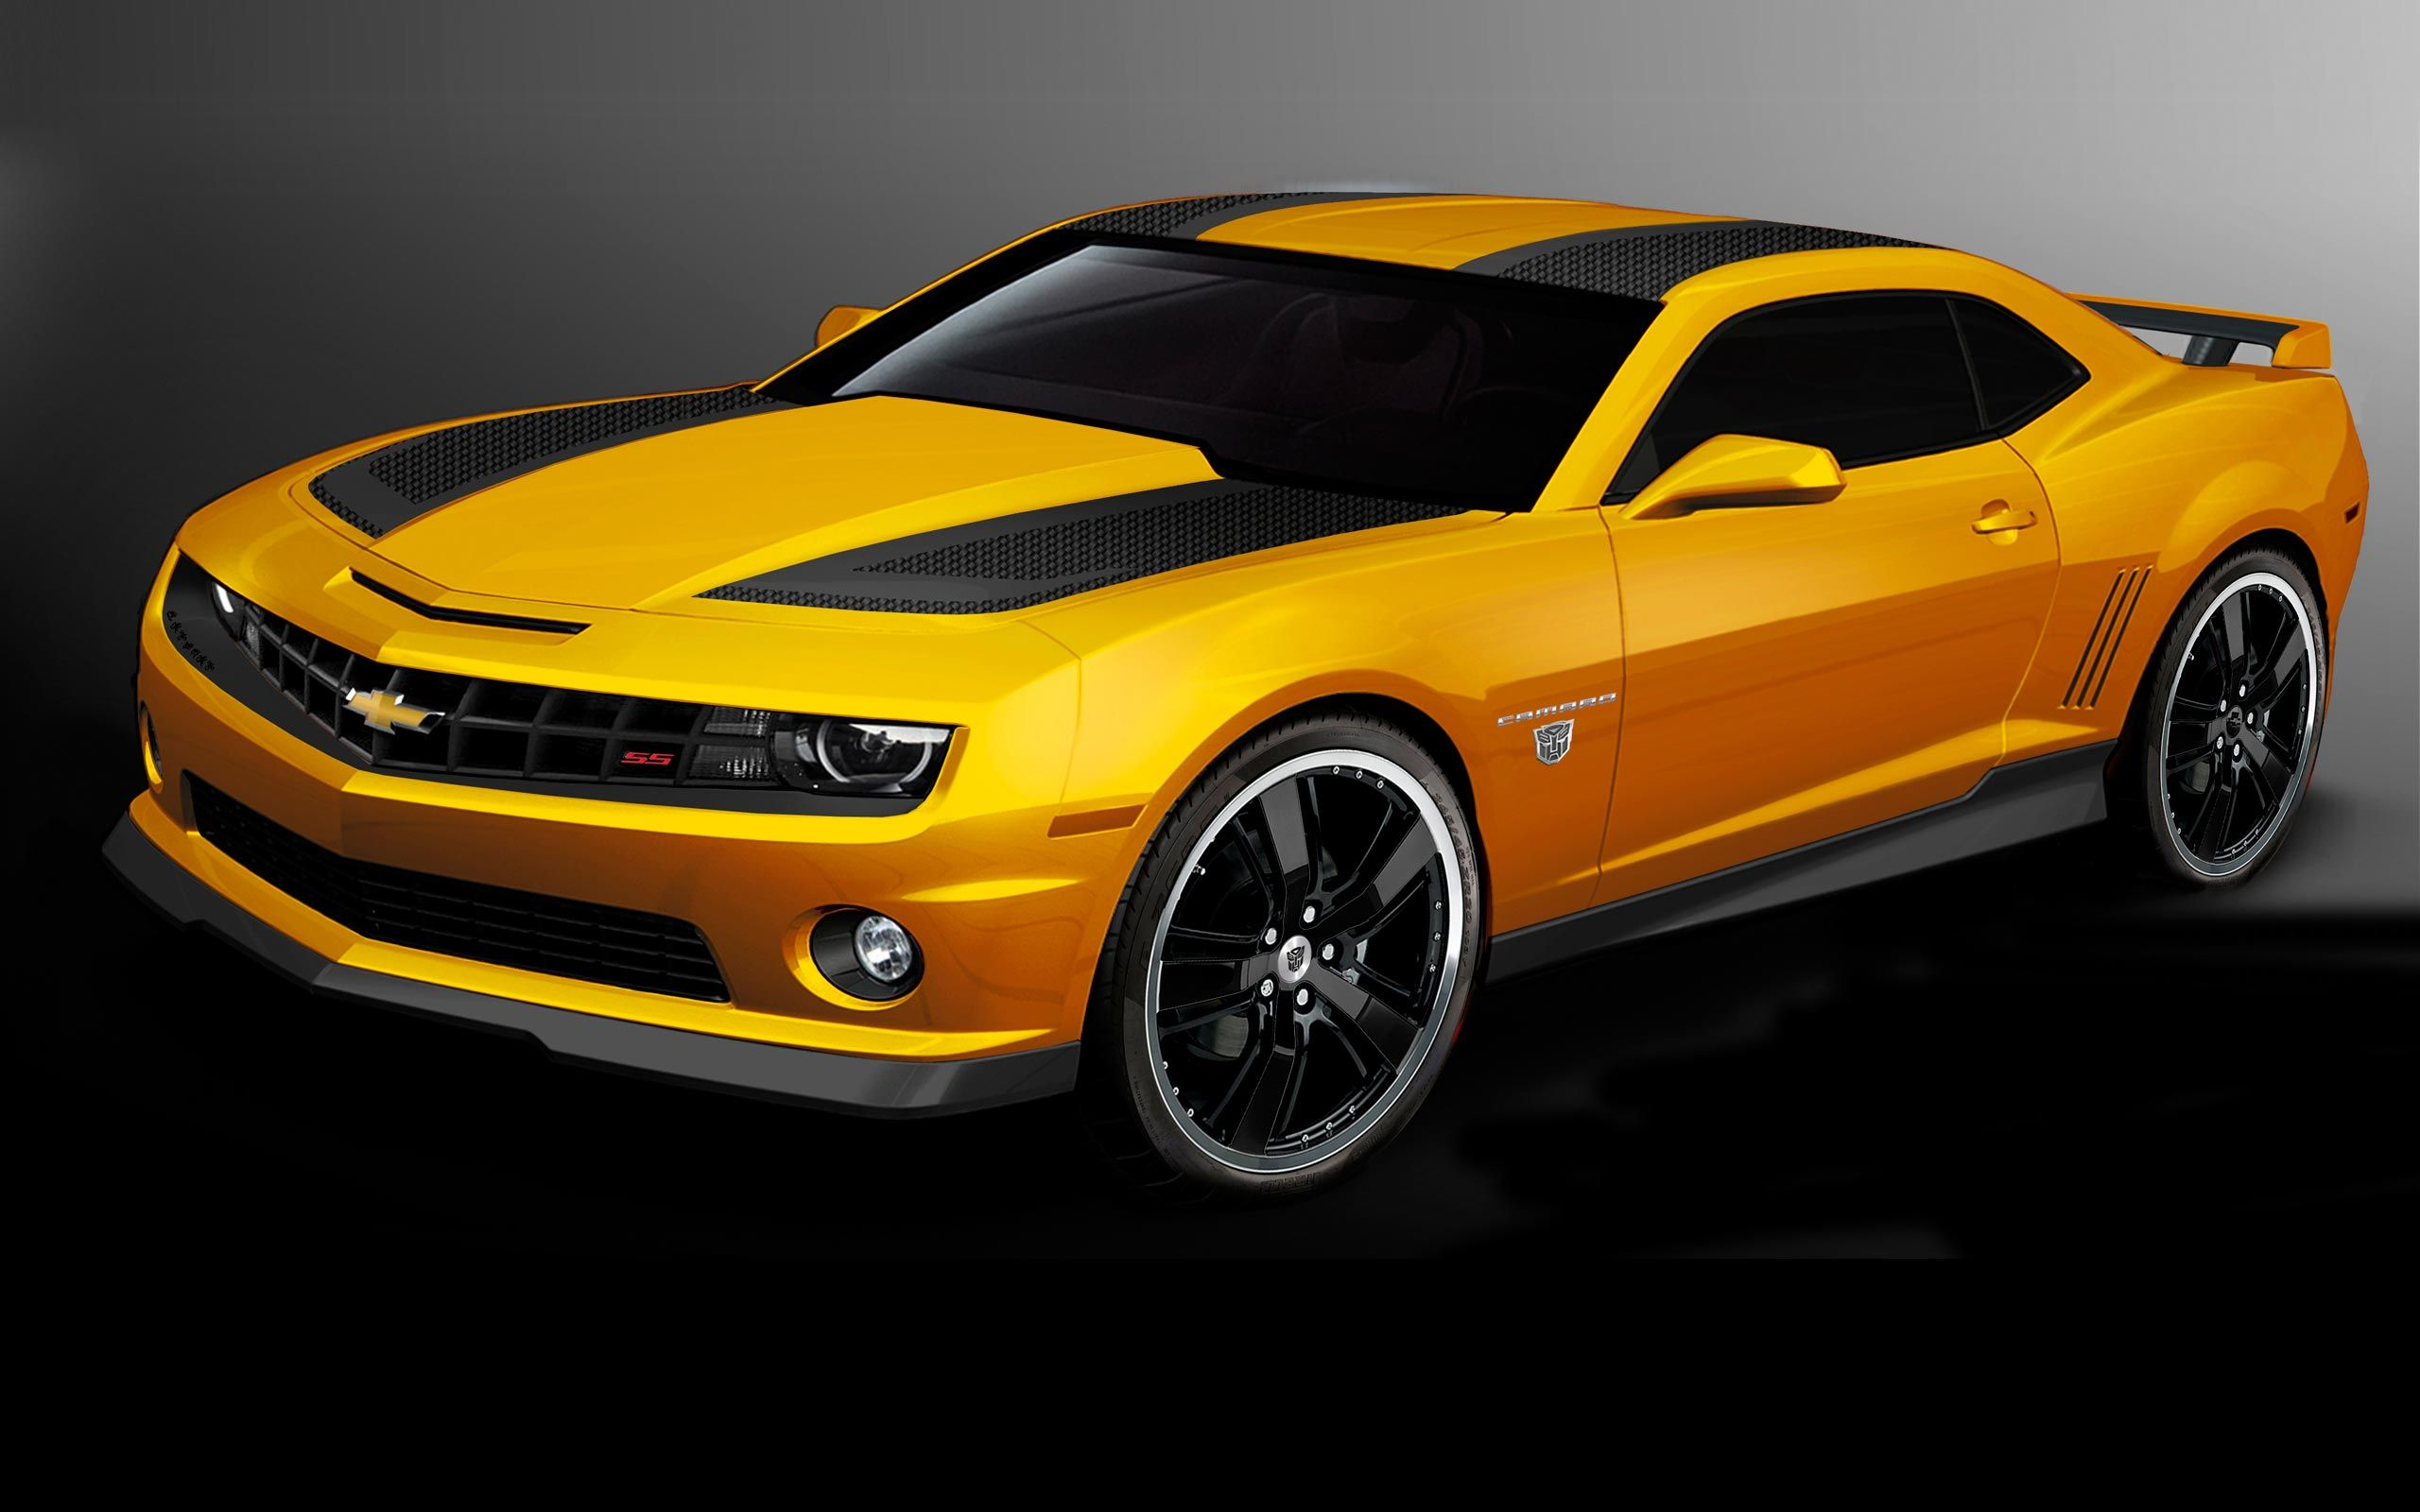 cool sports cars cool yellow carscool car wallpapers in hd gallery for desktop btktstv